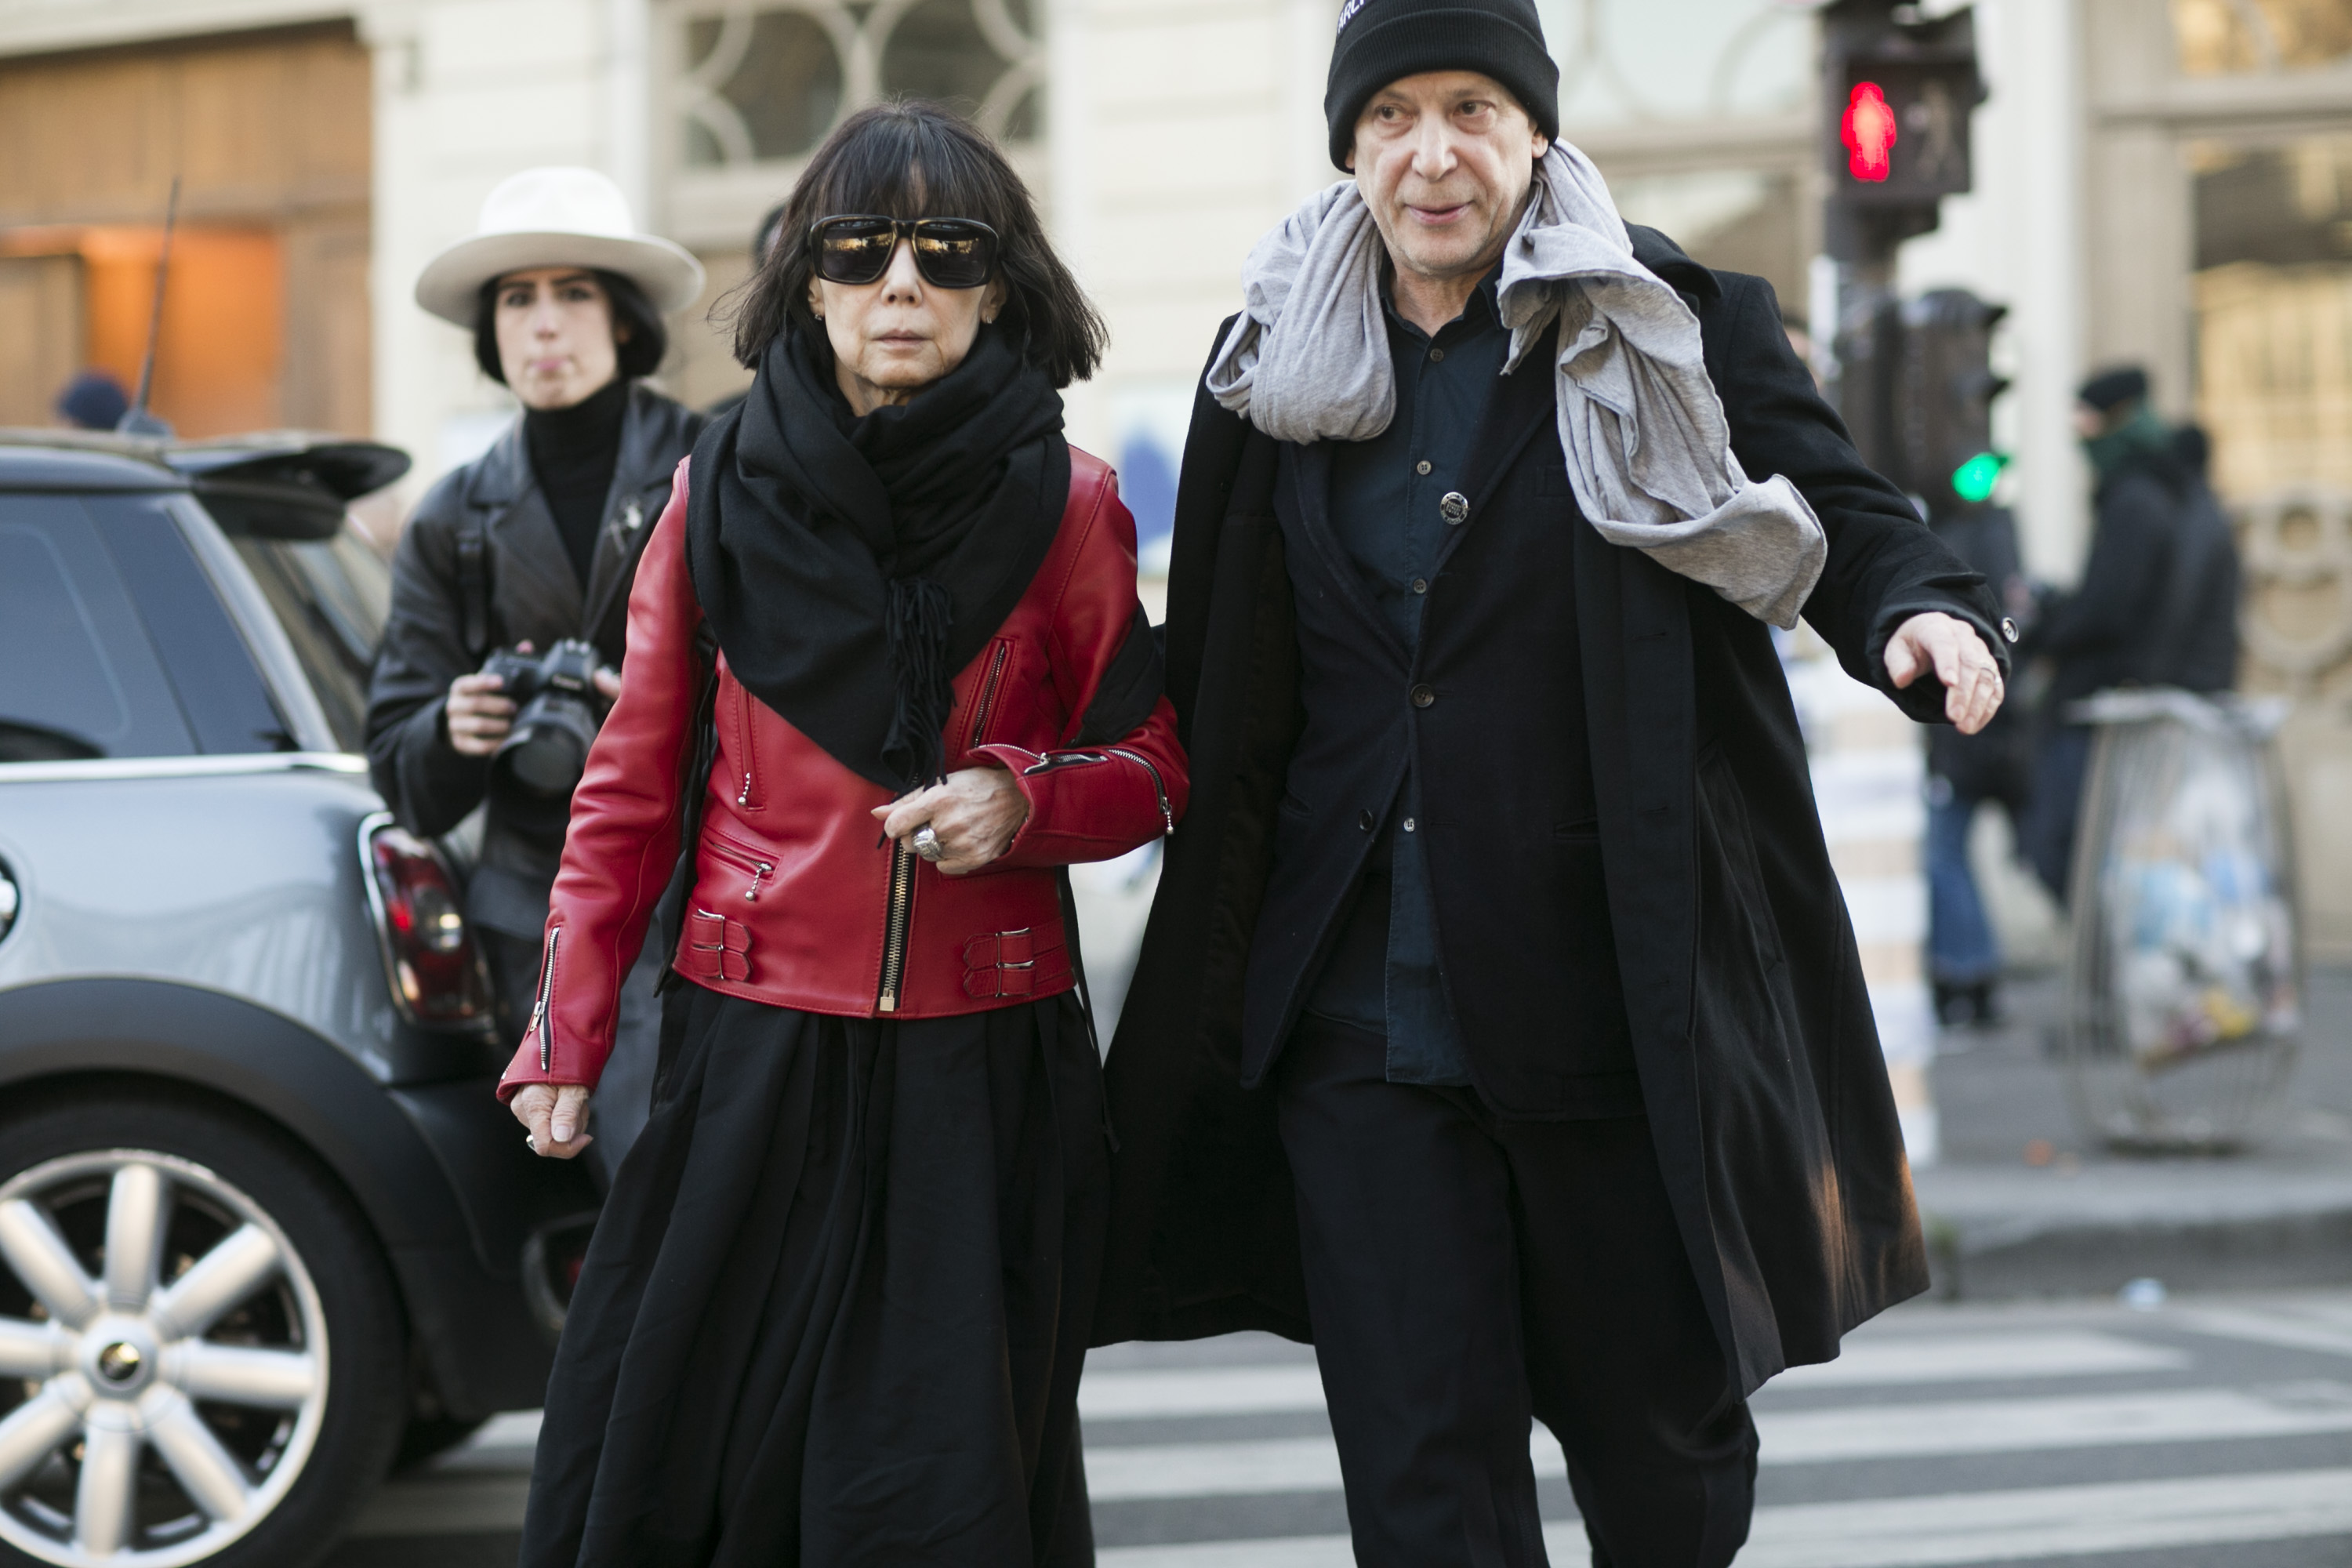 PARIS, FRANCE - JANUARY 21: Rei Kawakubo, Comme des Garcons creative director, and Adrian Joffe, Dover Street Market and Comme des Garcons president, exit the Gosha Rubchinskiy show on January 21, 2016 in Paris, France. Rei wears a red Comme des Garcons leather jacket, black sunglasses, a black scard, and black dress. (Photo by Melodie Jeng/Getty Images)